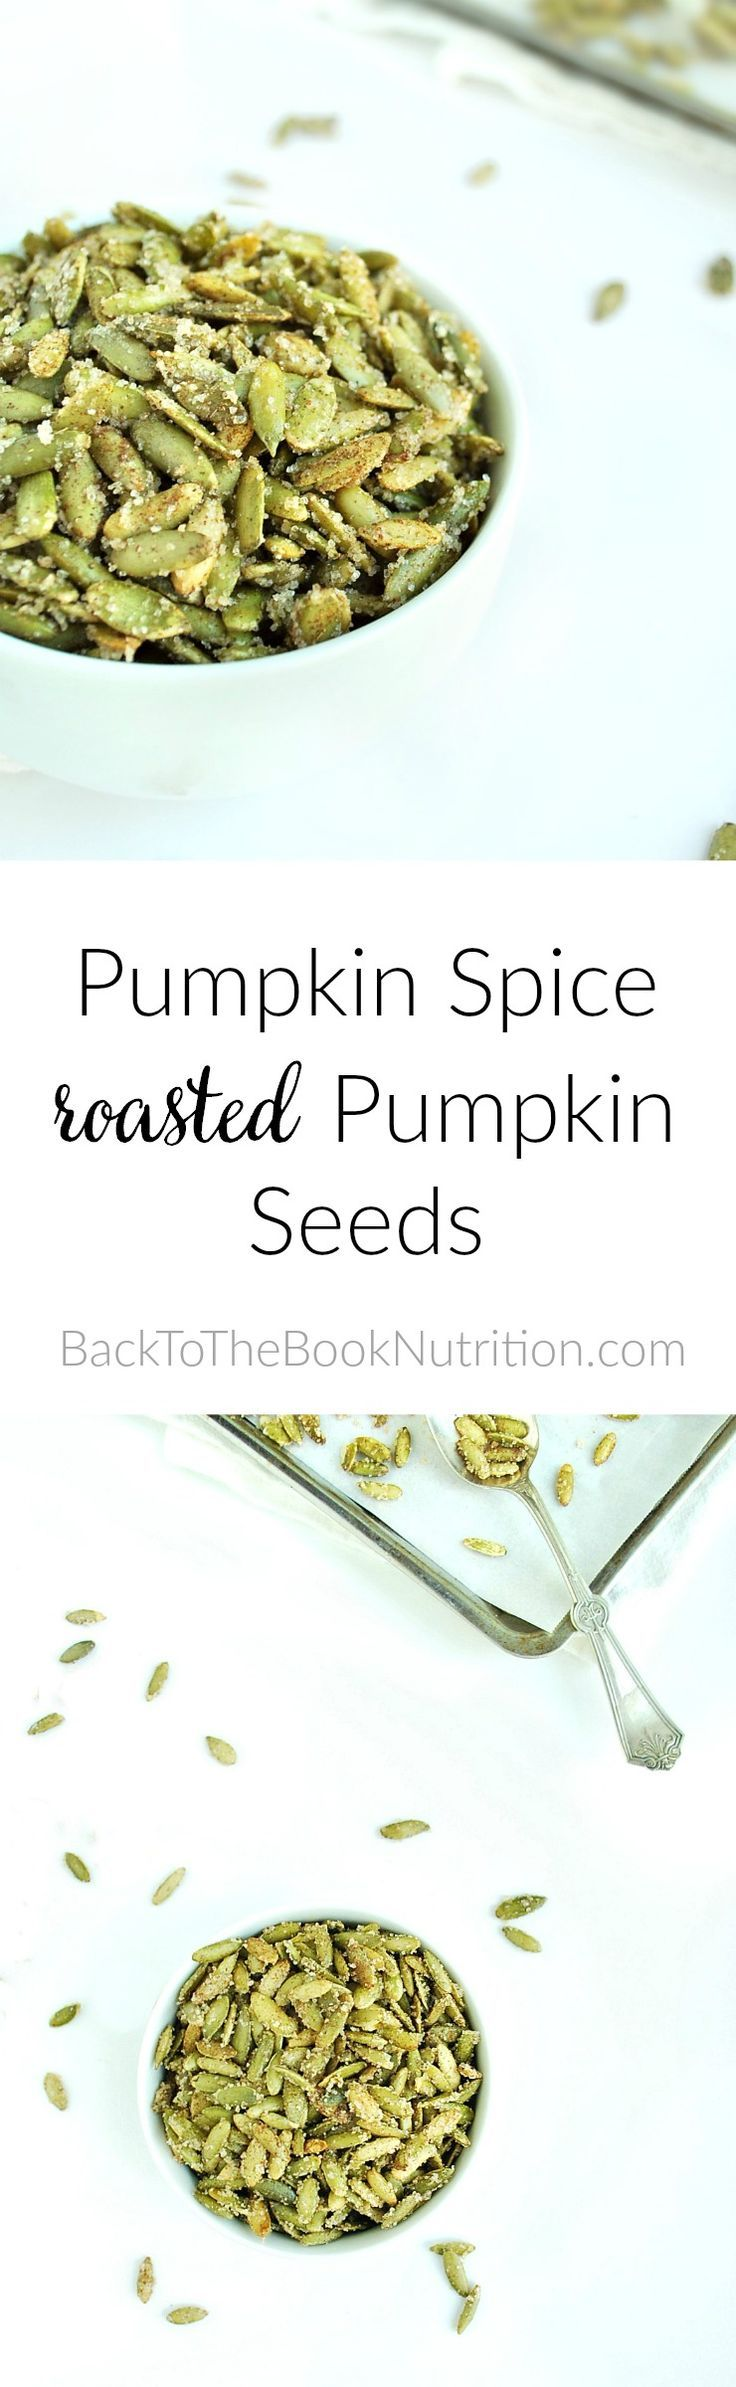 Easy Pumpkin Spice Roasted Pumpkin Seeds - healthy and surprisingly addictive!   Back To The Book Nutrition